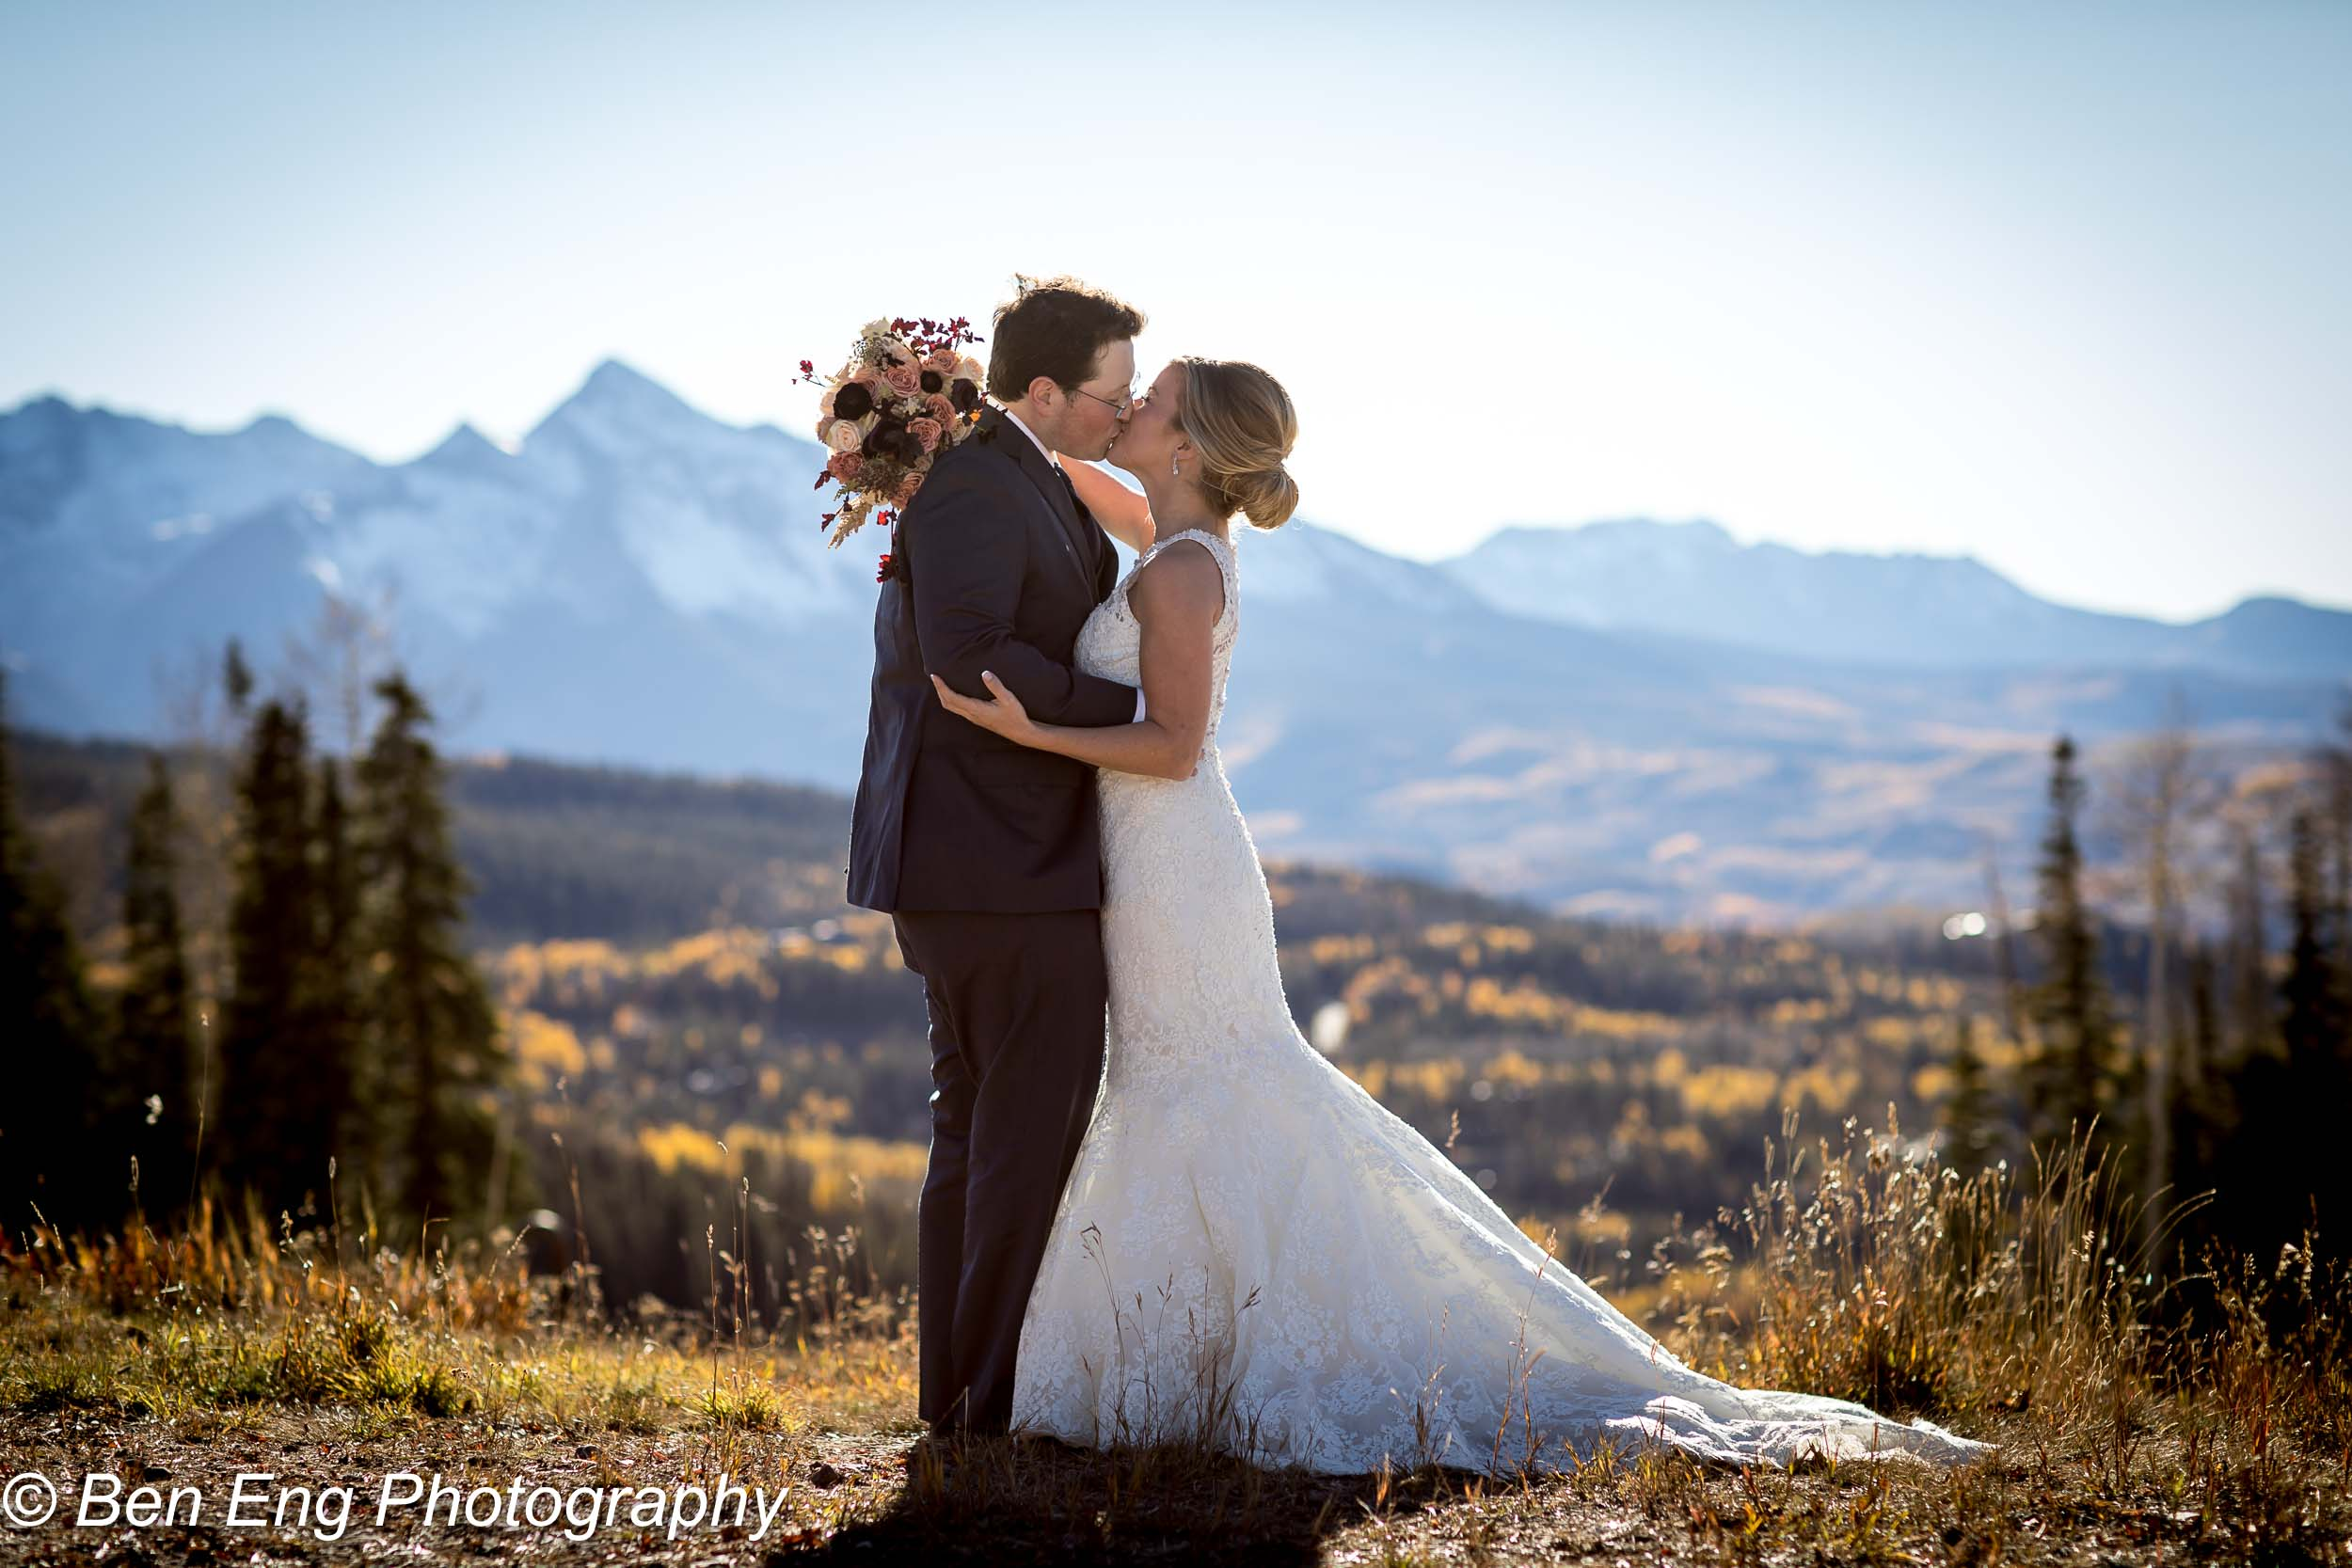 Molly and Jered's Wedding in the mountains of Colorado!